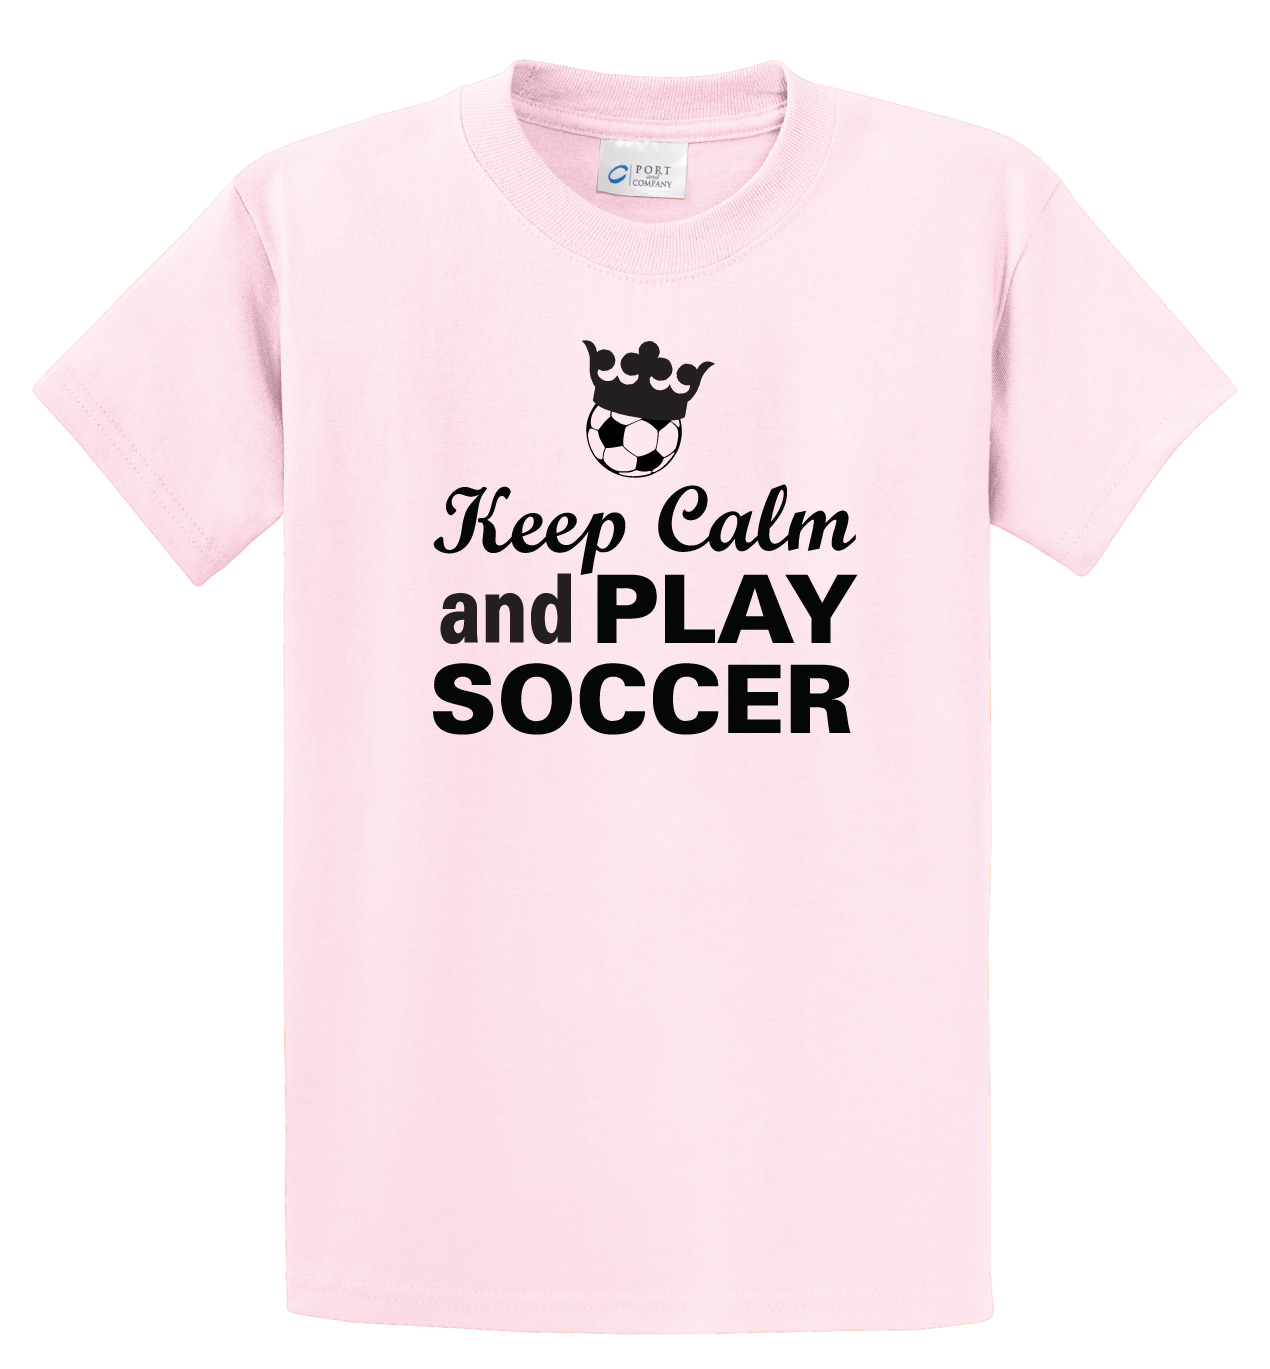 Keep Calm and Play soccer tee in pink